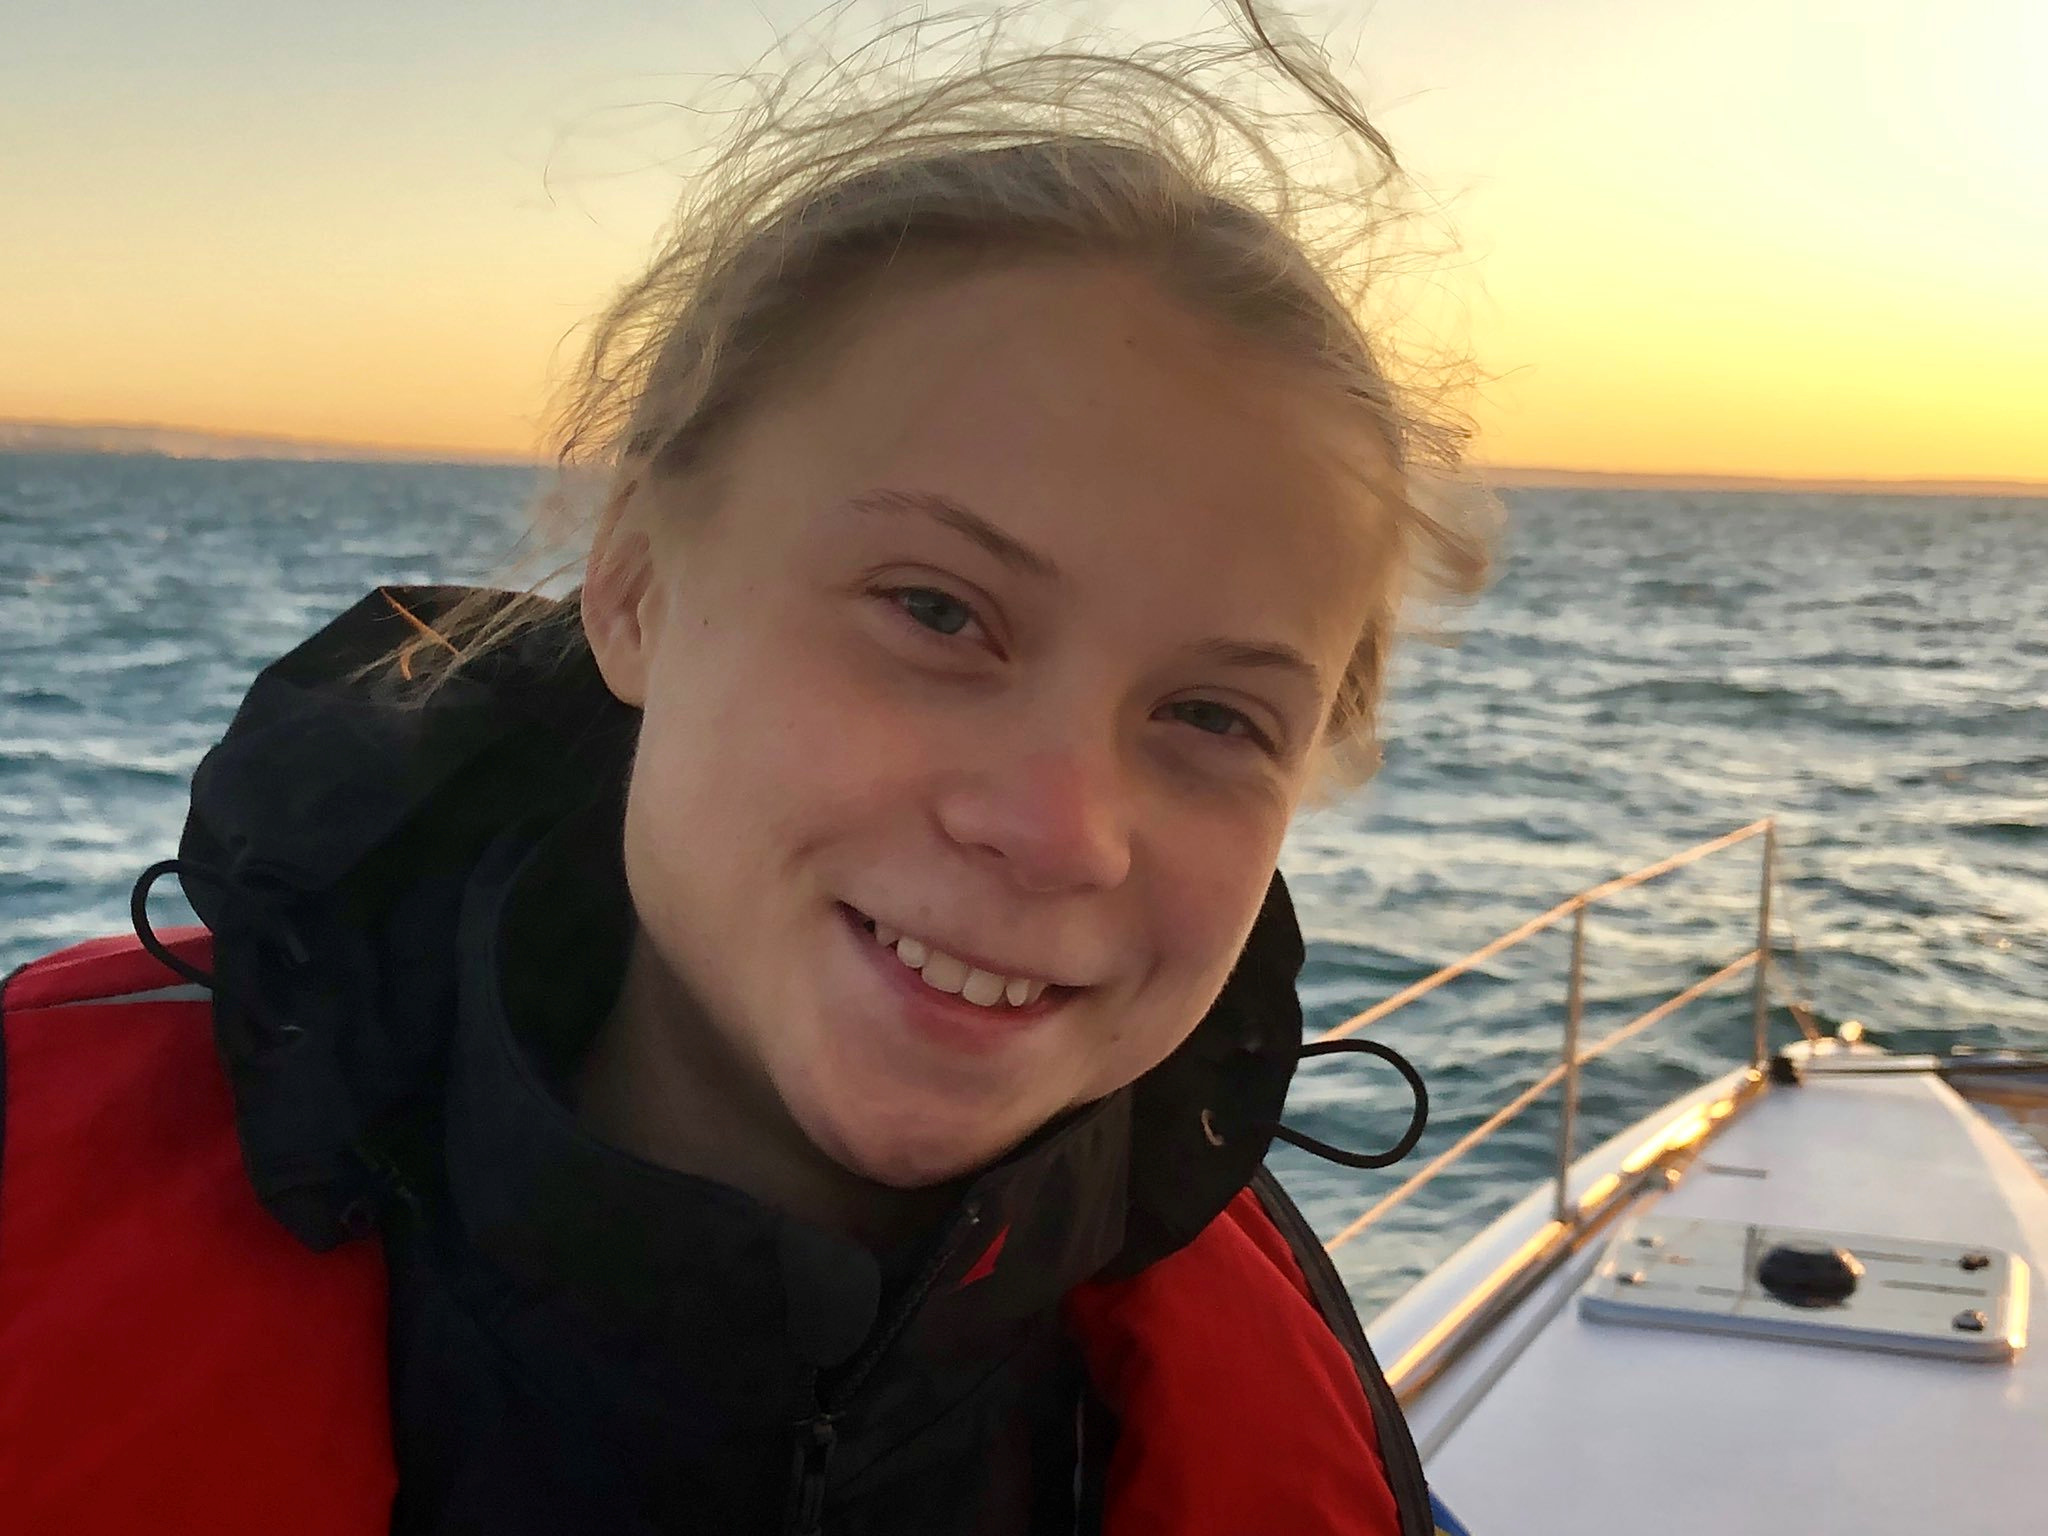 Climate change activist Greta Thunberg, aboard the yacht La Vagabonde, smiles as she heads into Santo Amaro port in Lisbon, Portugal, December 3, 2019 in this picture obtained from social media. Greta Thunberg via REUTERS THIS IMAGE HAS BEEN SUPPLIED BY A THIRD PARTY. MANDATORY CREDIT. NO RESALES. NO ARCHIVES.